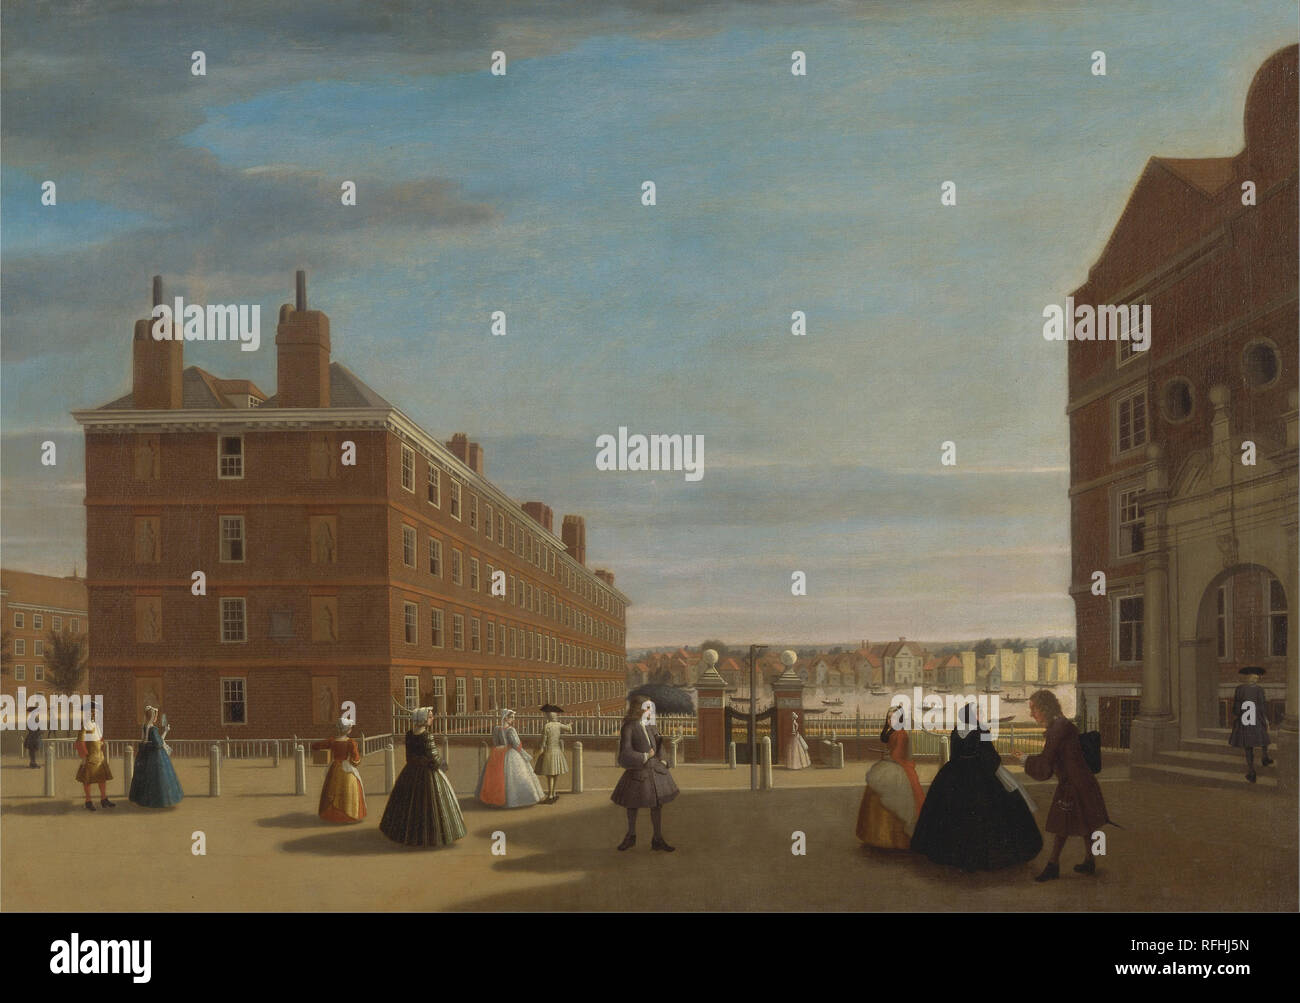 The Paper Buildings, Inner Temple, London. Date/Period: Ca. 1725. Painting. Oil on canvas. Height: 876 mm (34.48 in); Width: 1,251 mm (49.25 in). Author: UNKNOWN ARTIST. - Stock Image